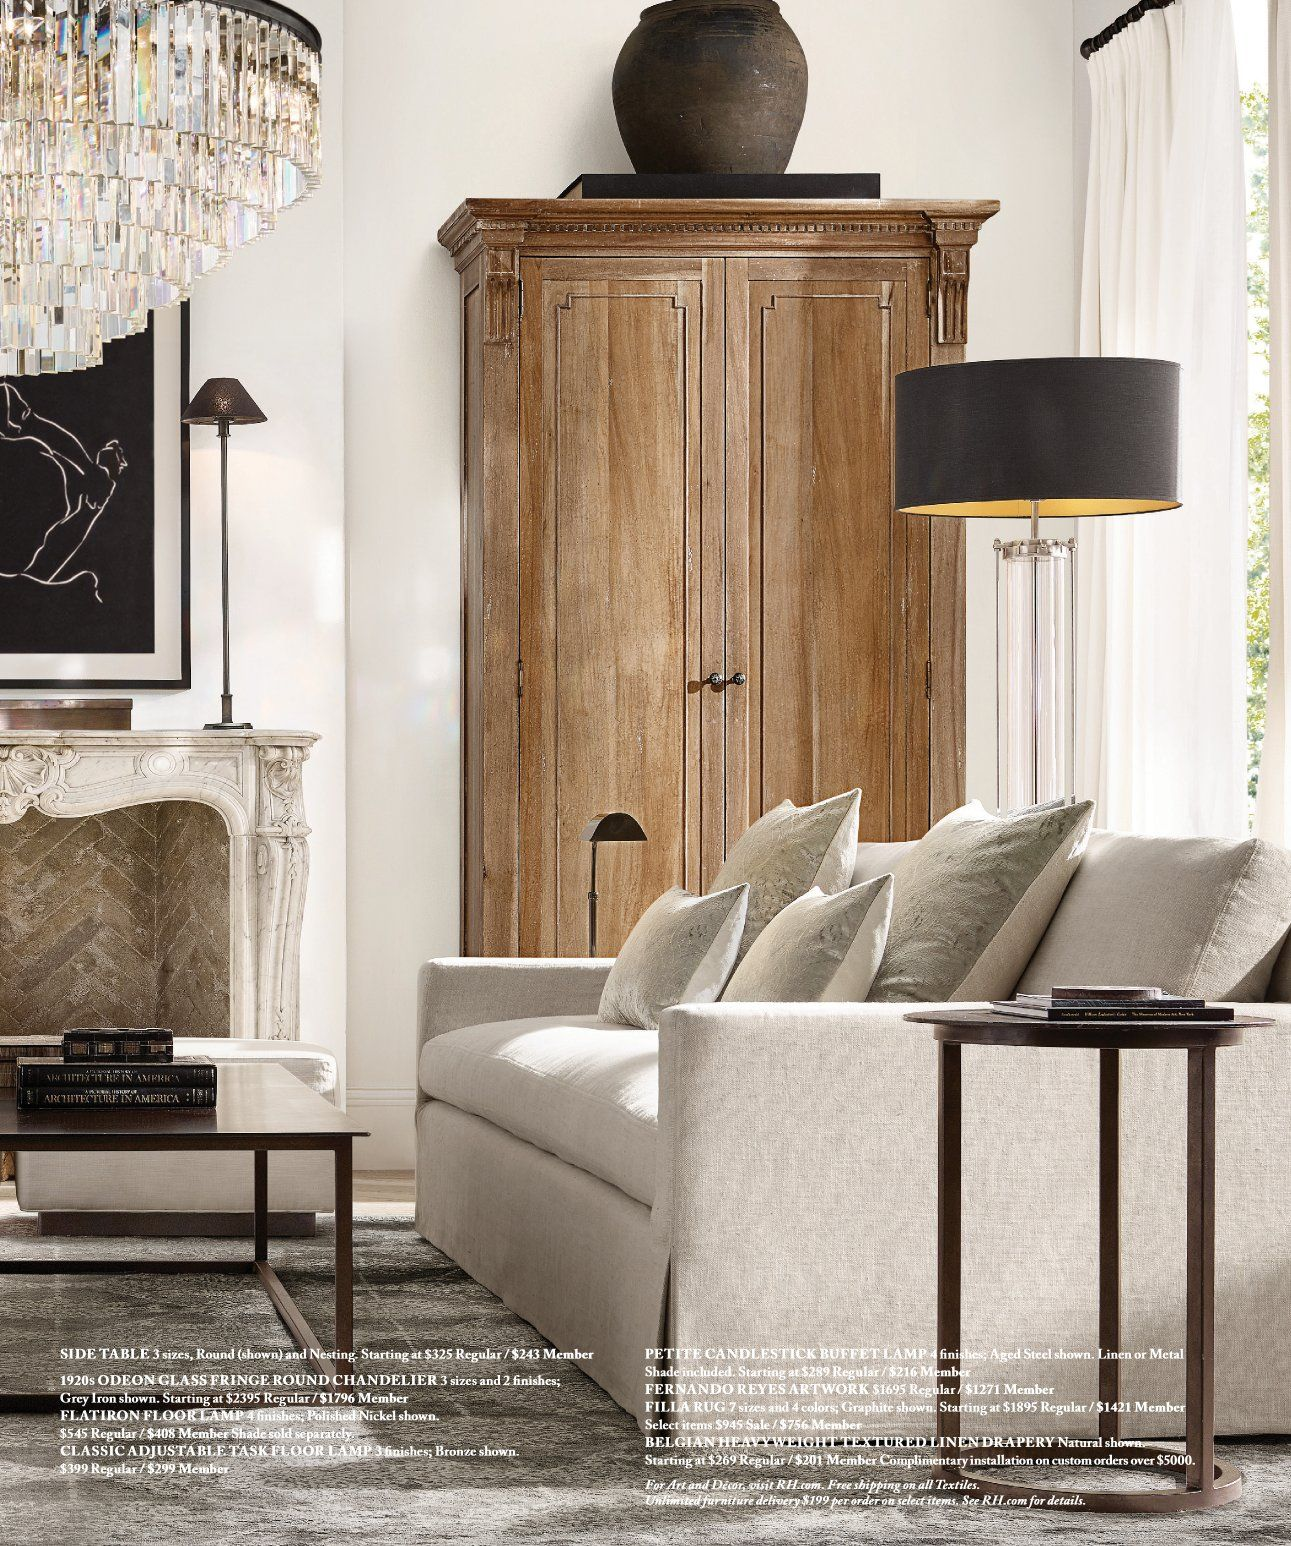 rh source books with images  interior home decor